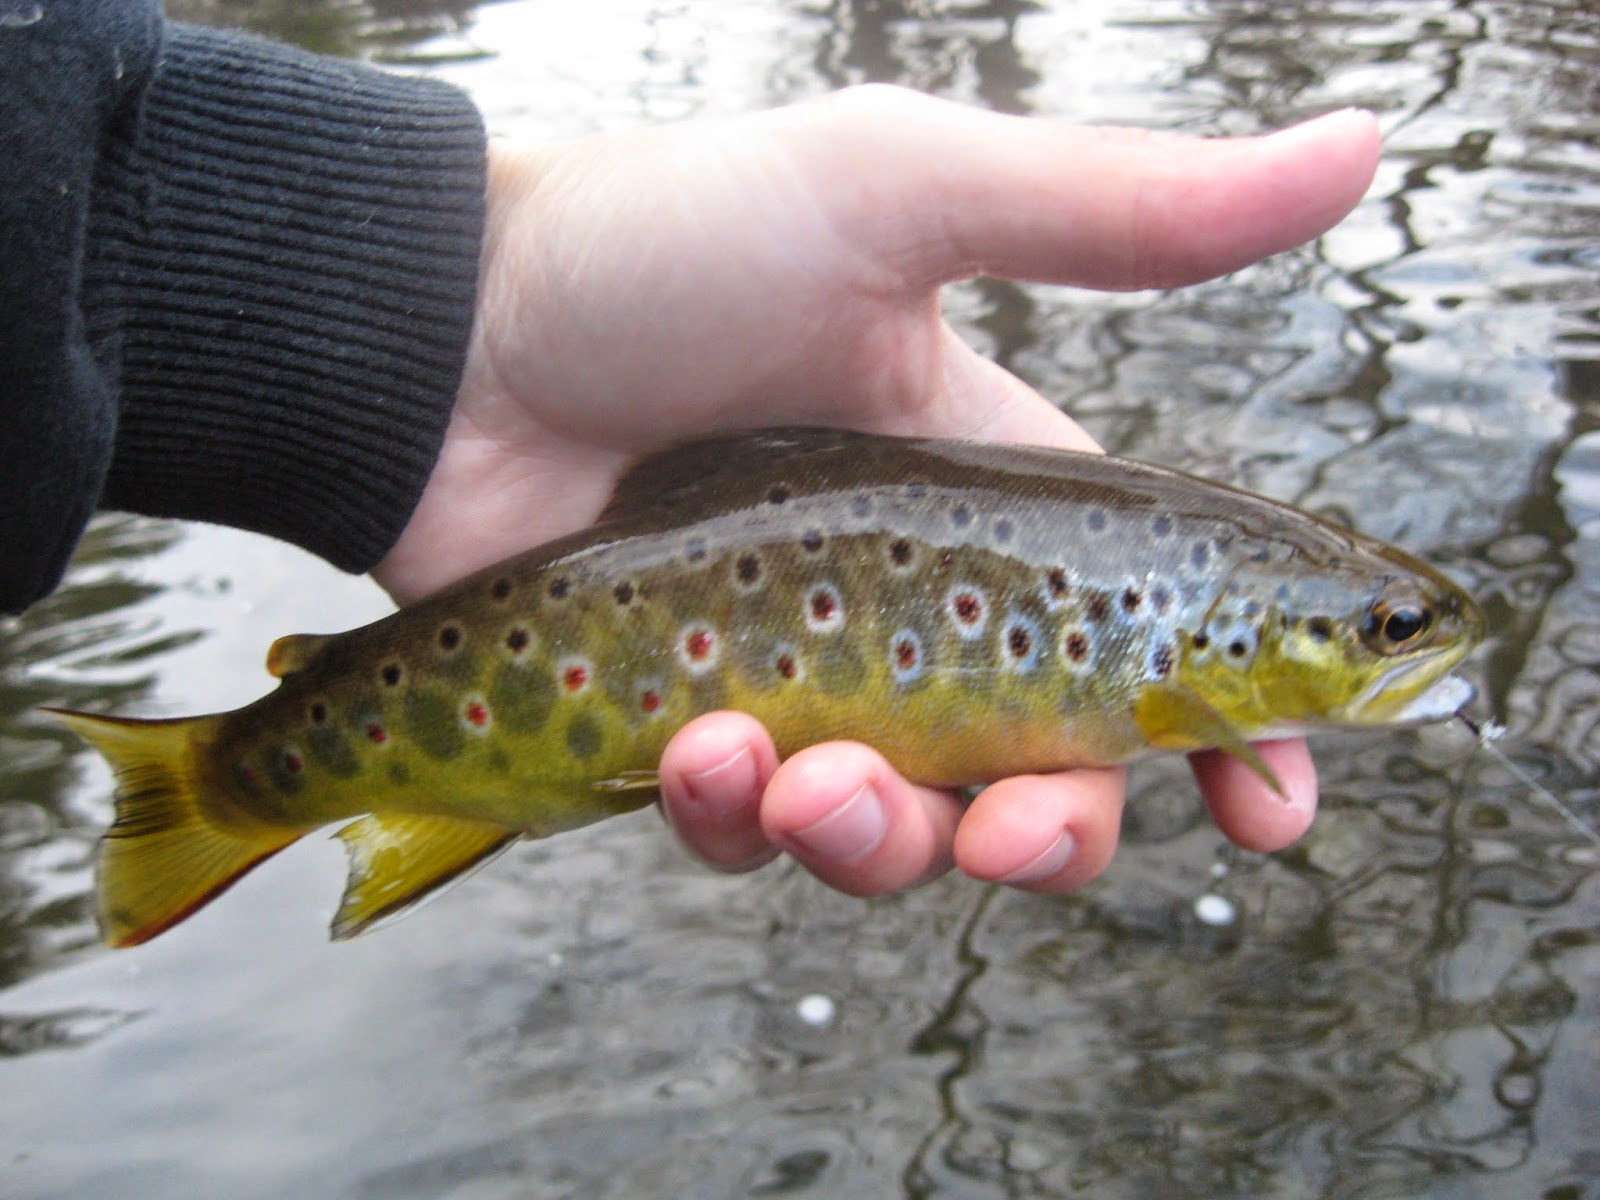 Minnesota driftless fly fishing trip report minnesota for Driftless fly fishing